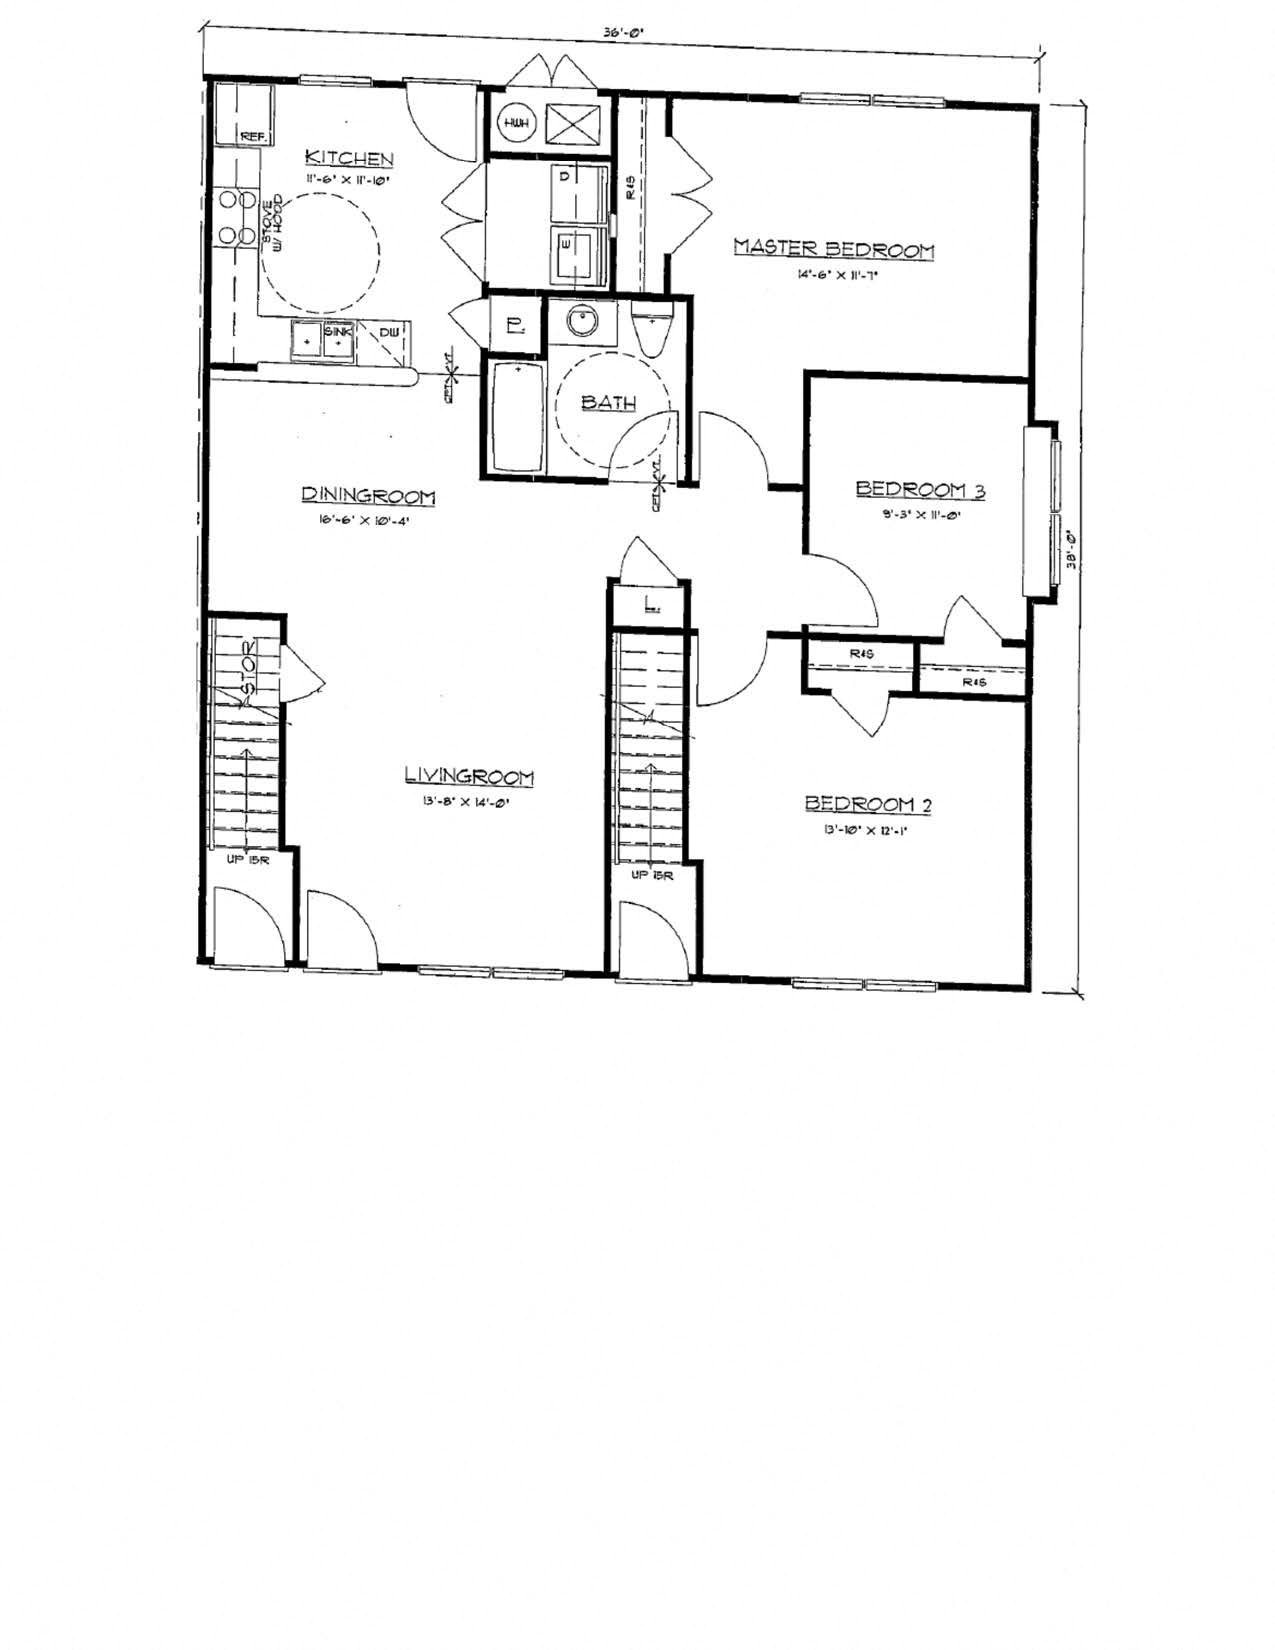 3 Bedroom Flat Floor Plan 4